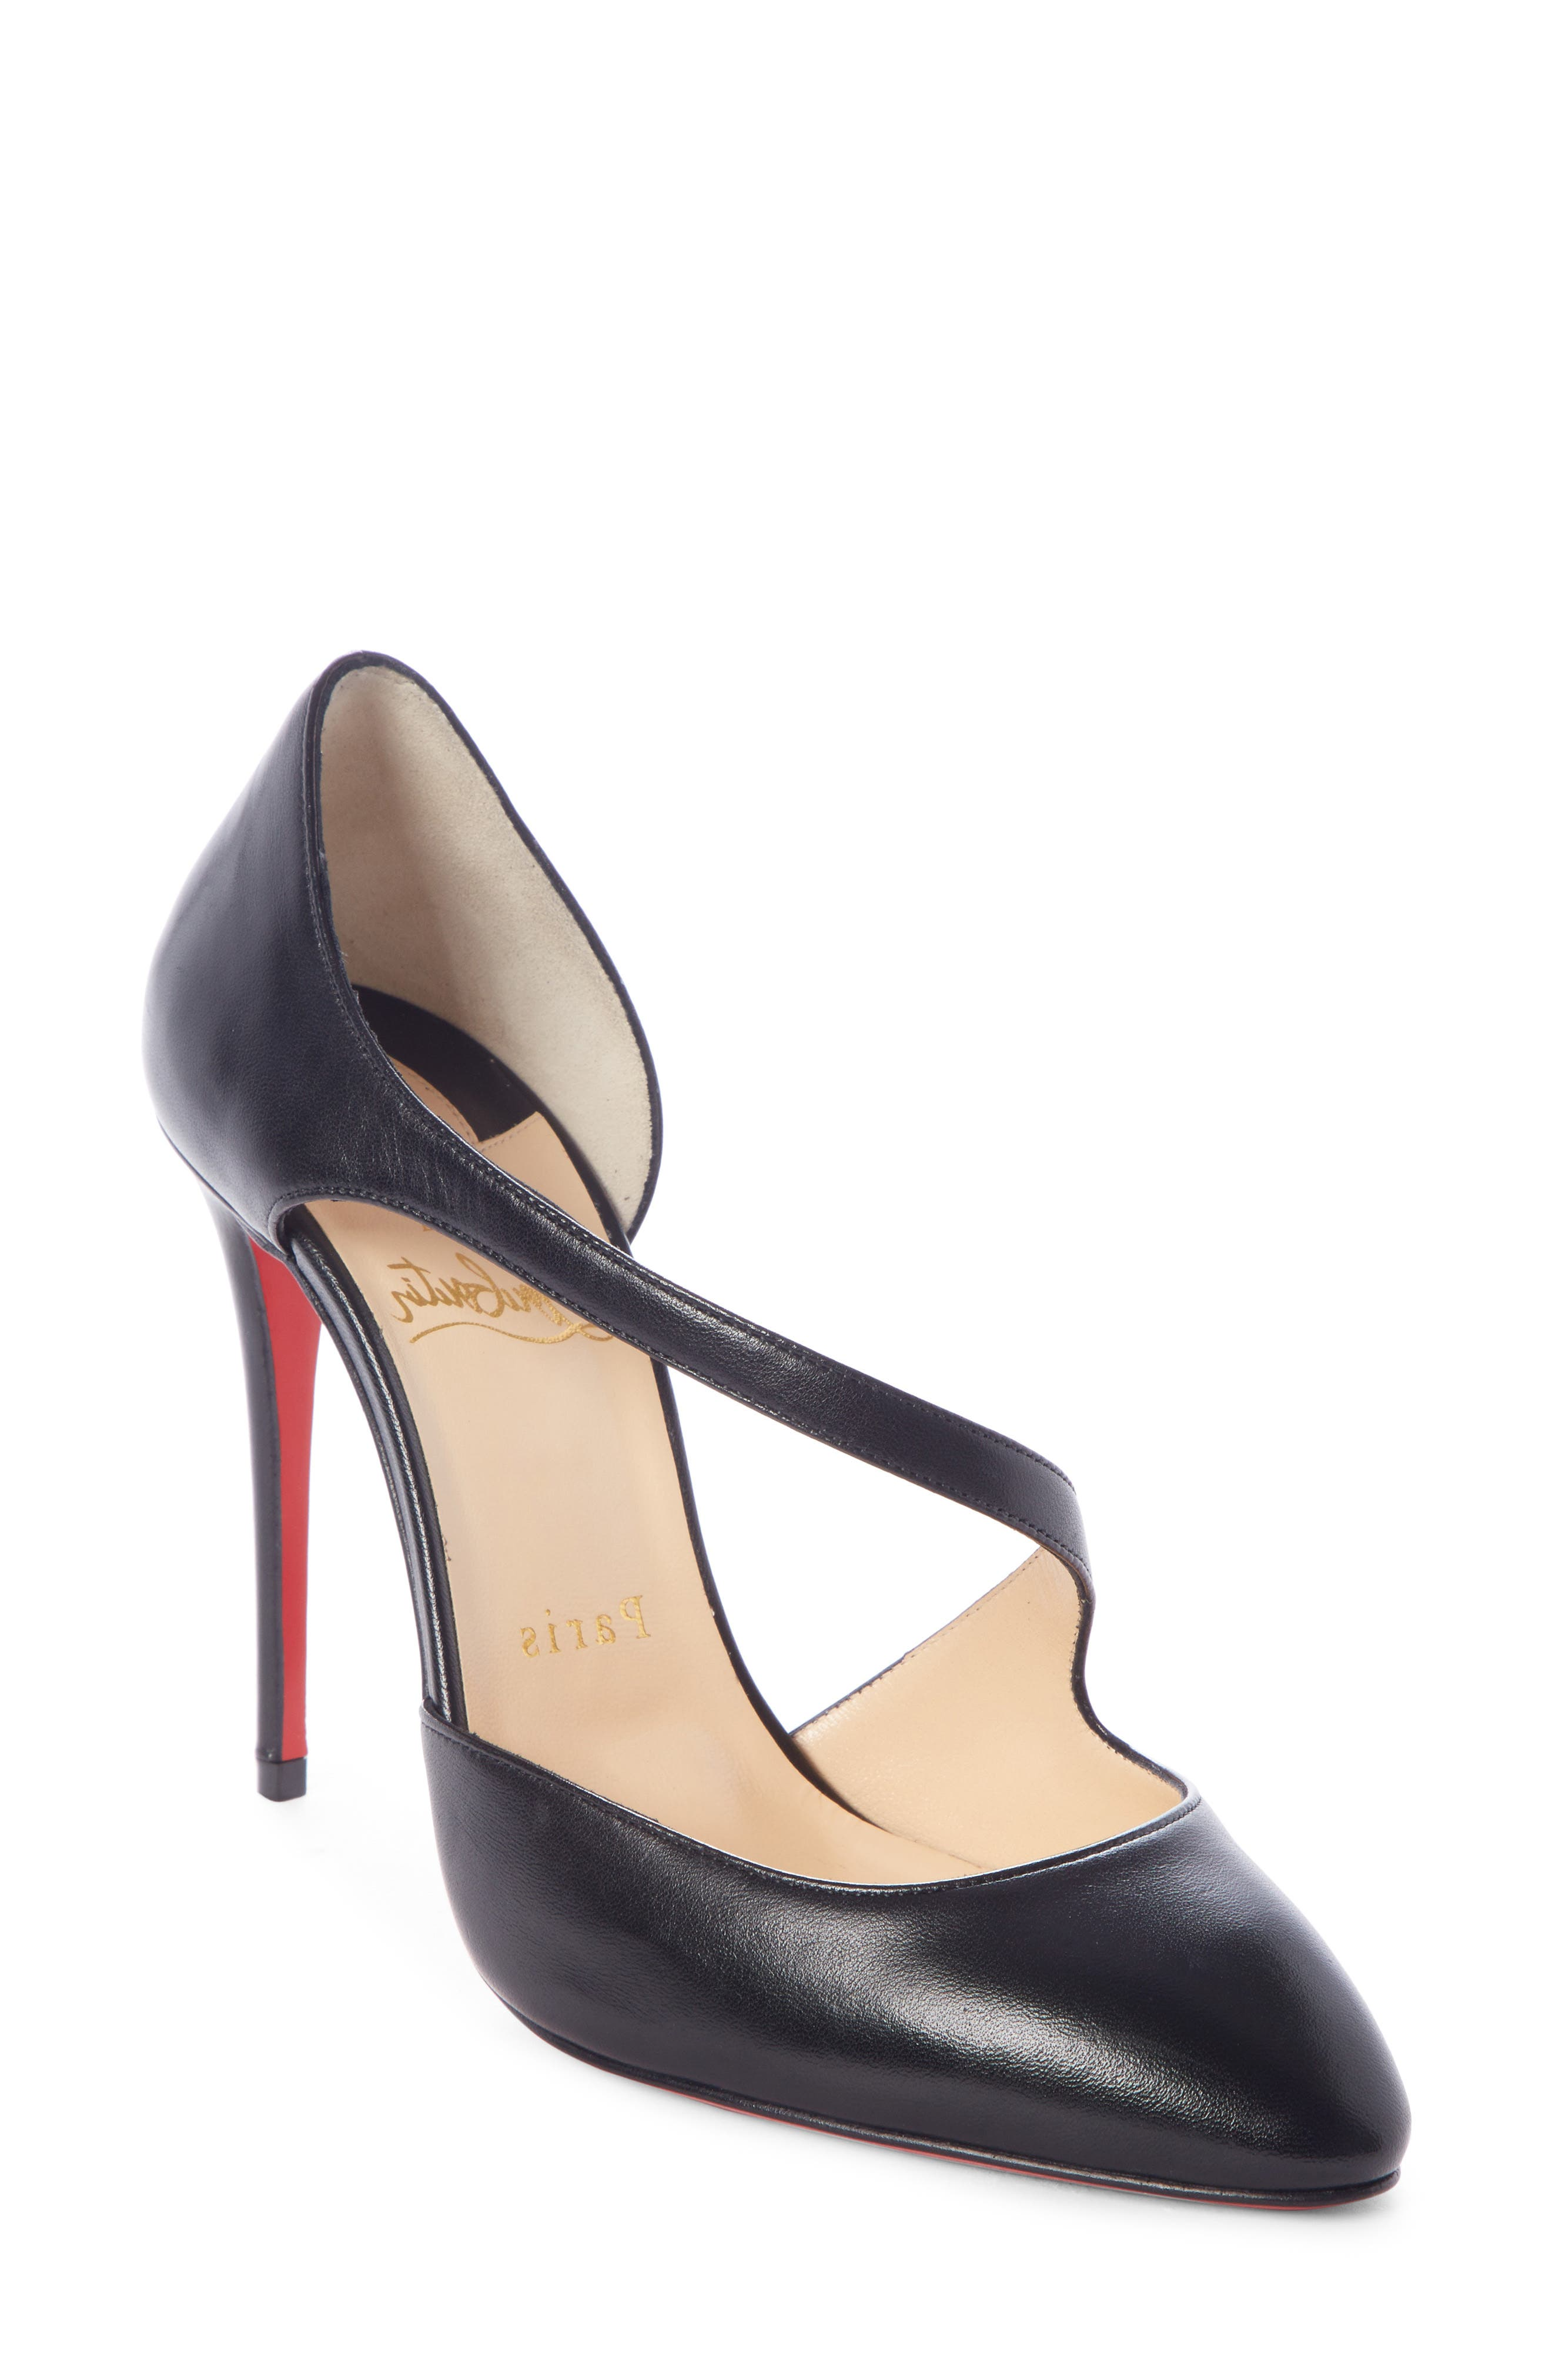 CHRISTIAN LOUBOUTIN Catchy One Strappy d'Orsay Pump, Main, color, BLACK